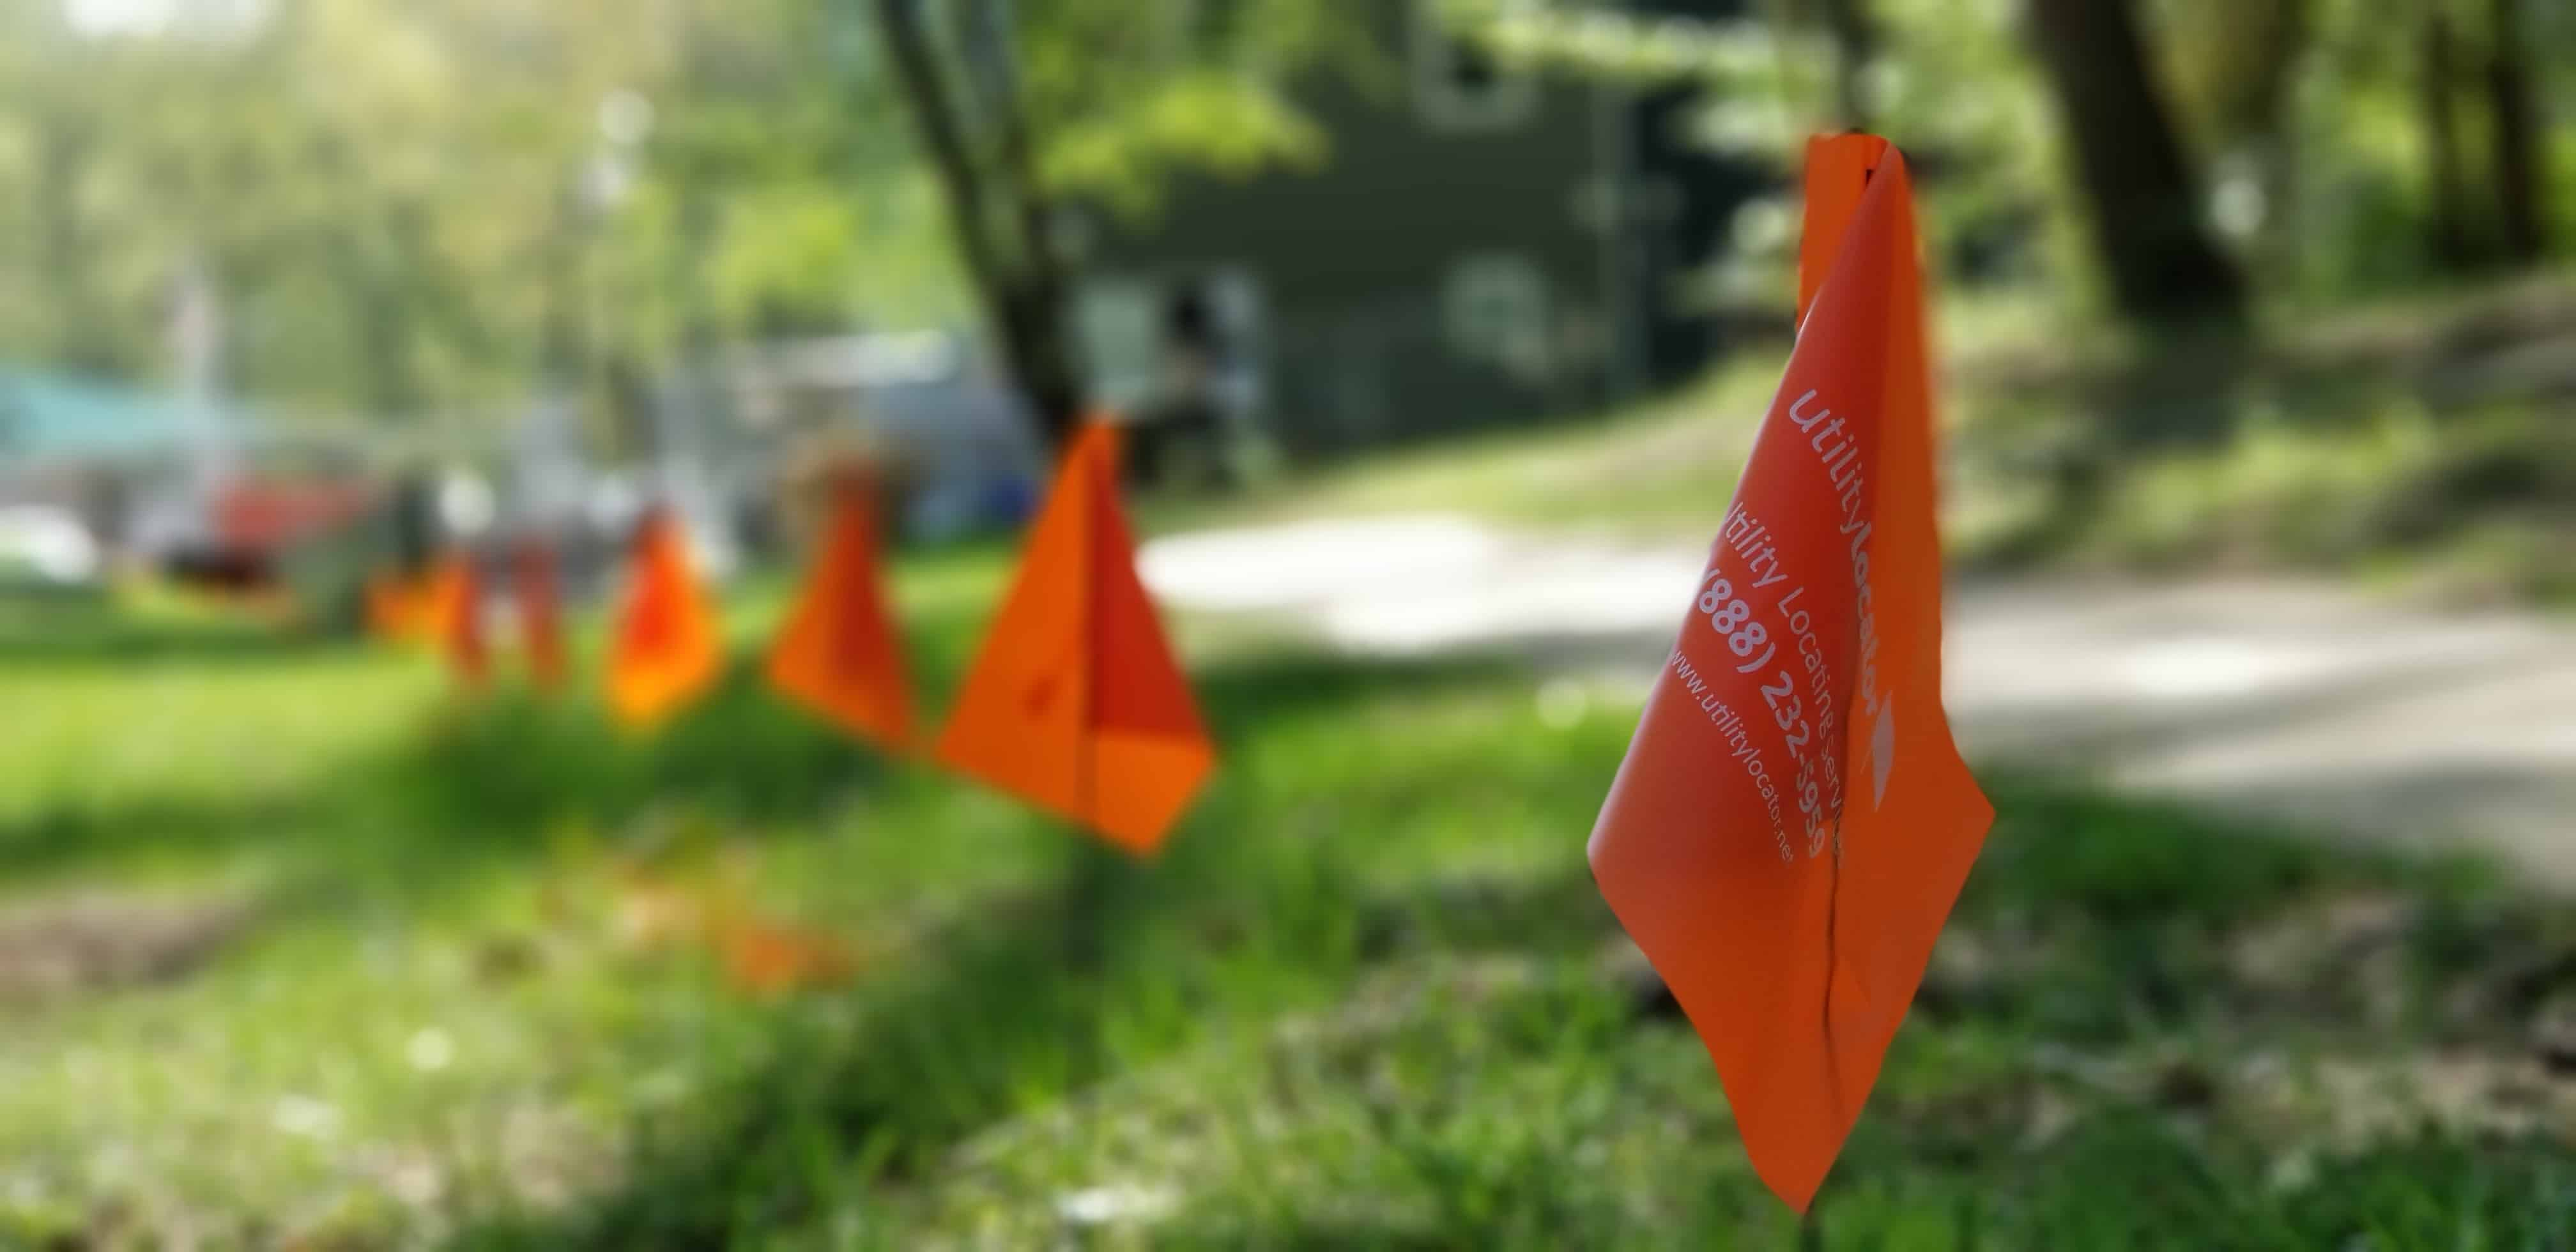 What Are These Little Colored Flags In My Yard Utility Locator Highlighting the heart and soul of true texas, the state's array of charming small towns offer the perfect combination of scenic landscapes, historic landmarks, and pure texan culture. little colored flags in my yard